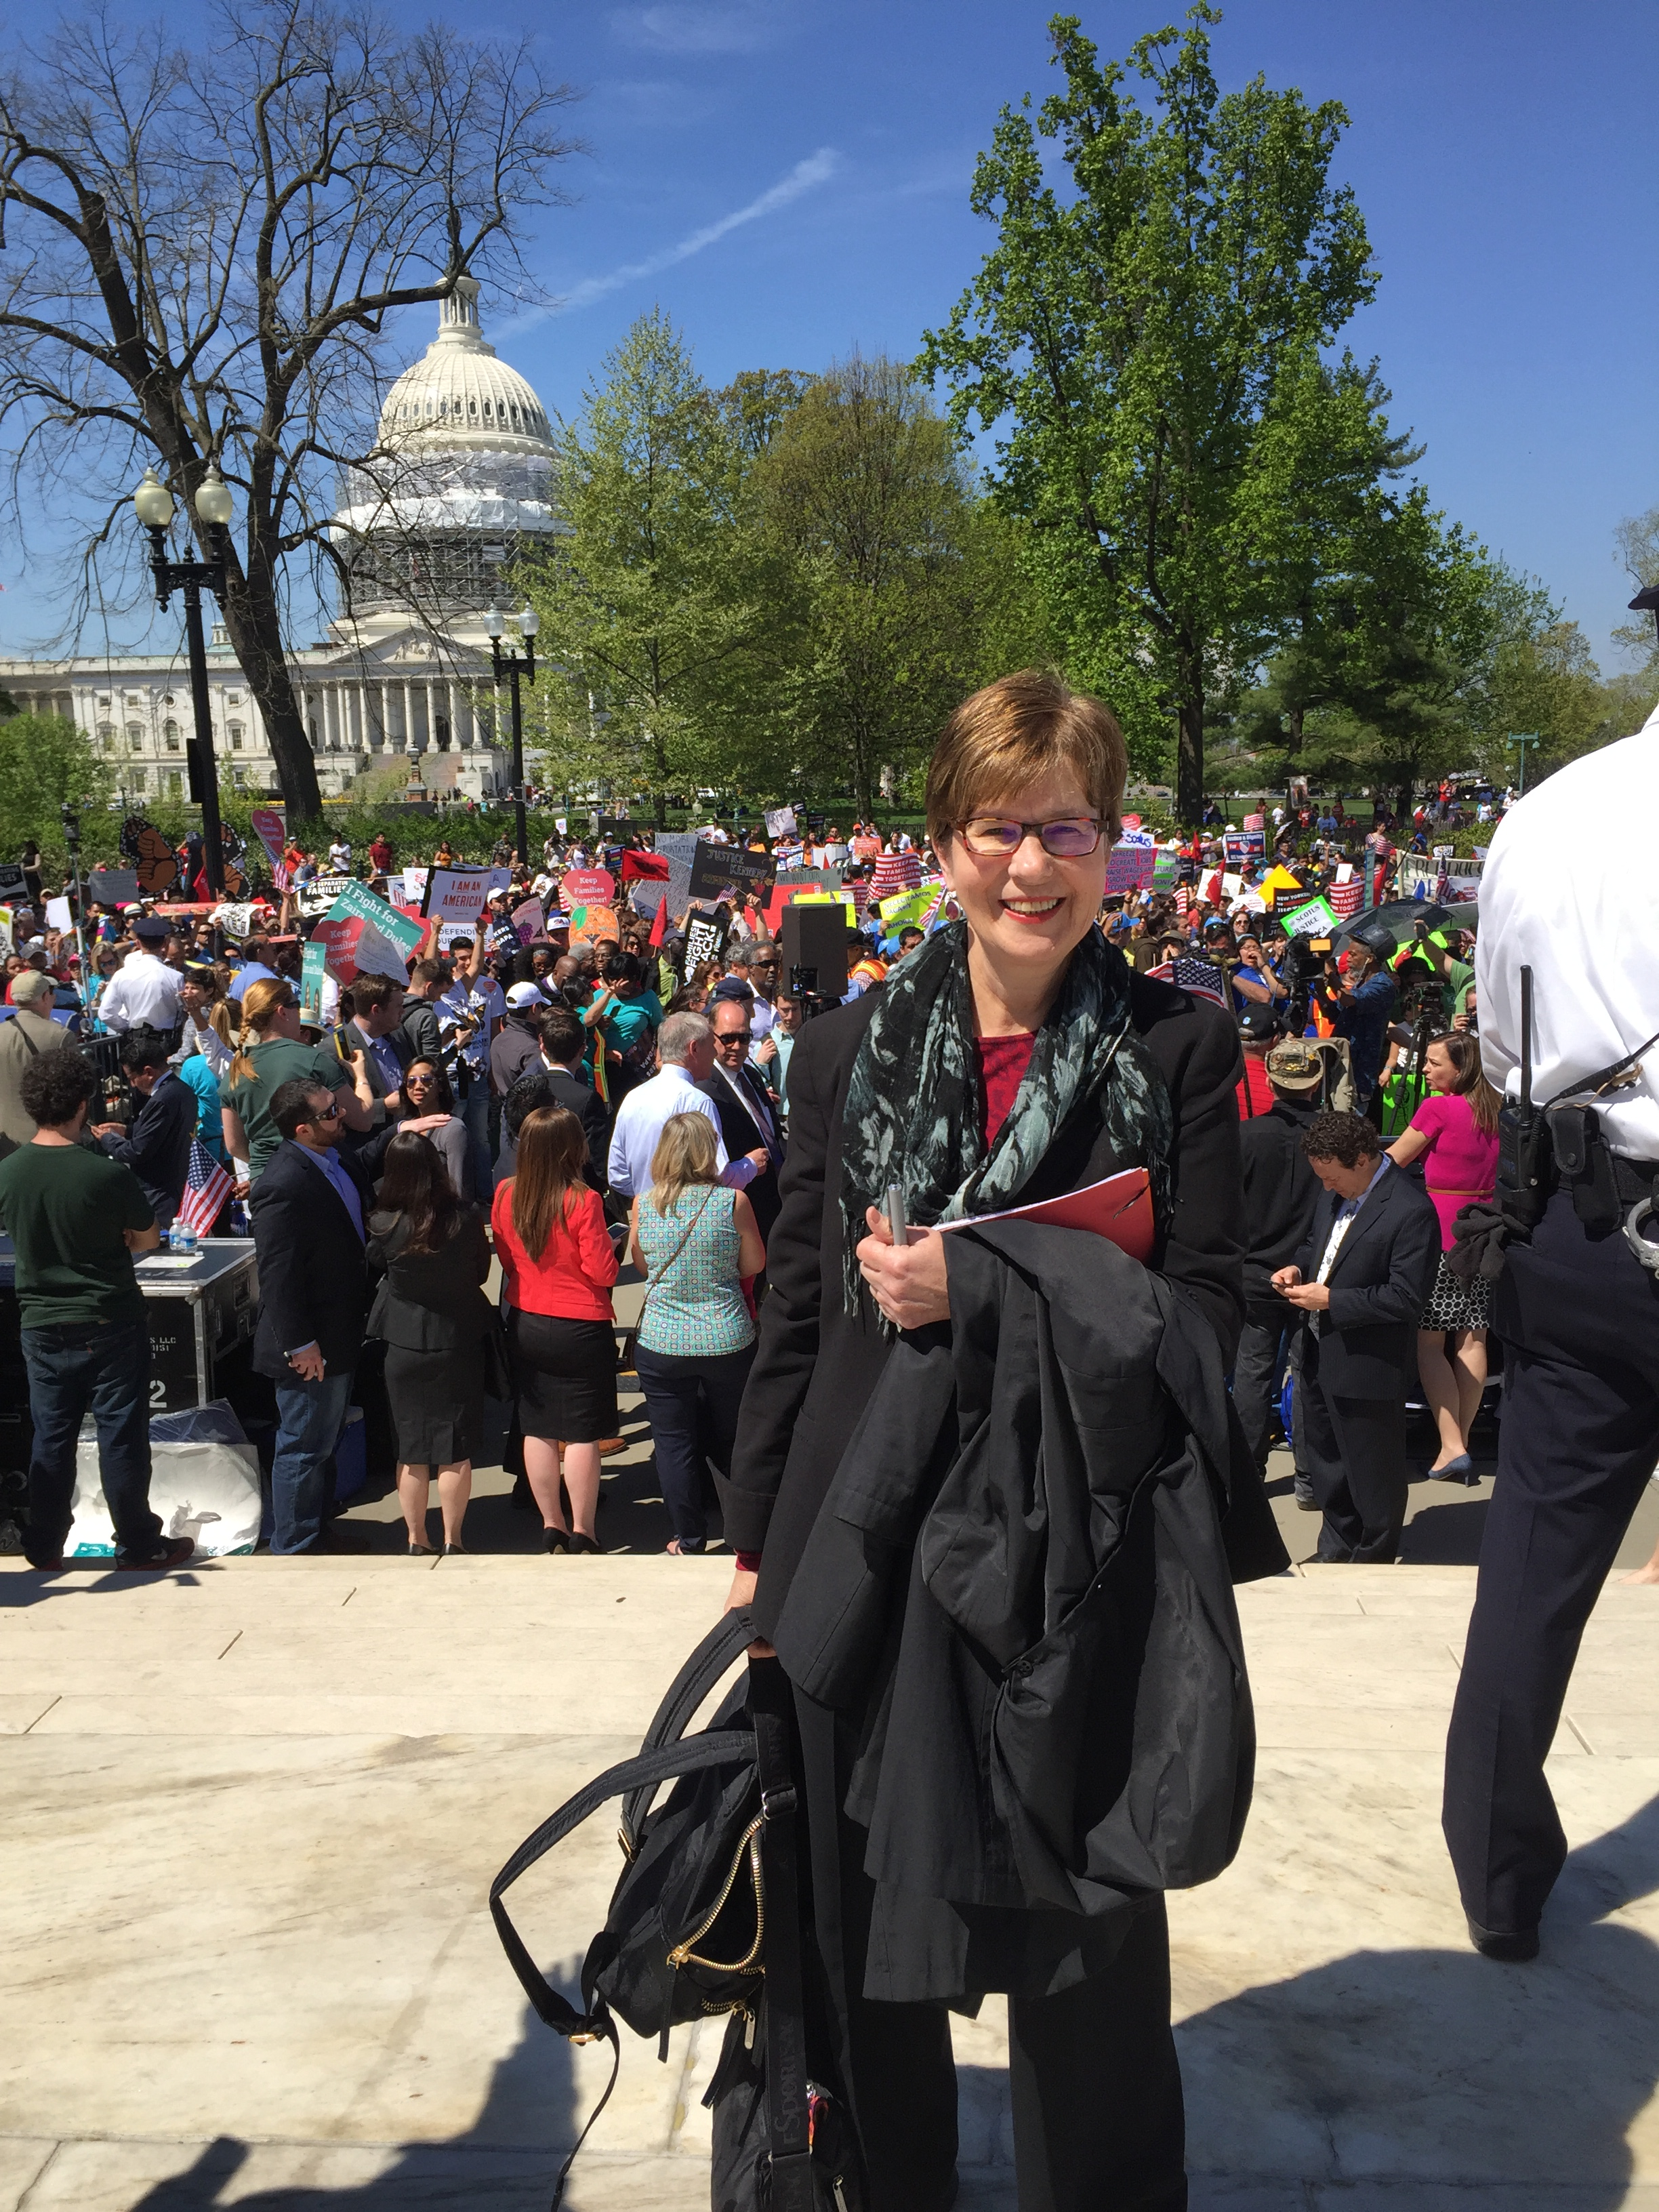 12-judy-at-capitol-re-immigration-justice-rally